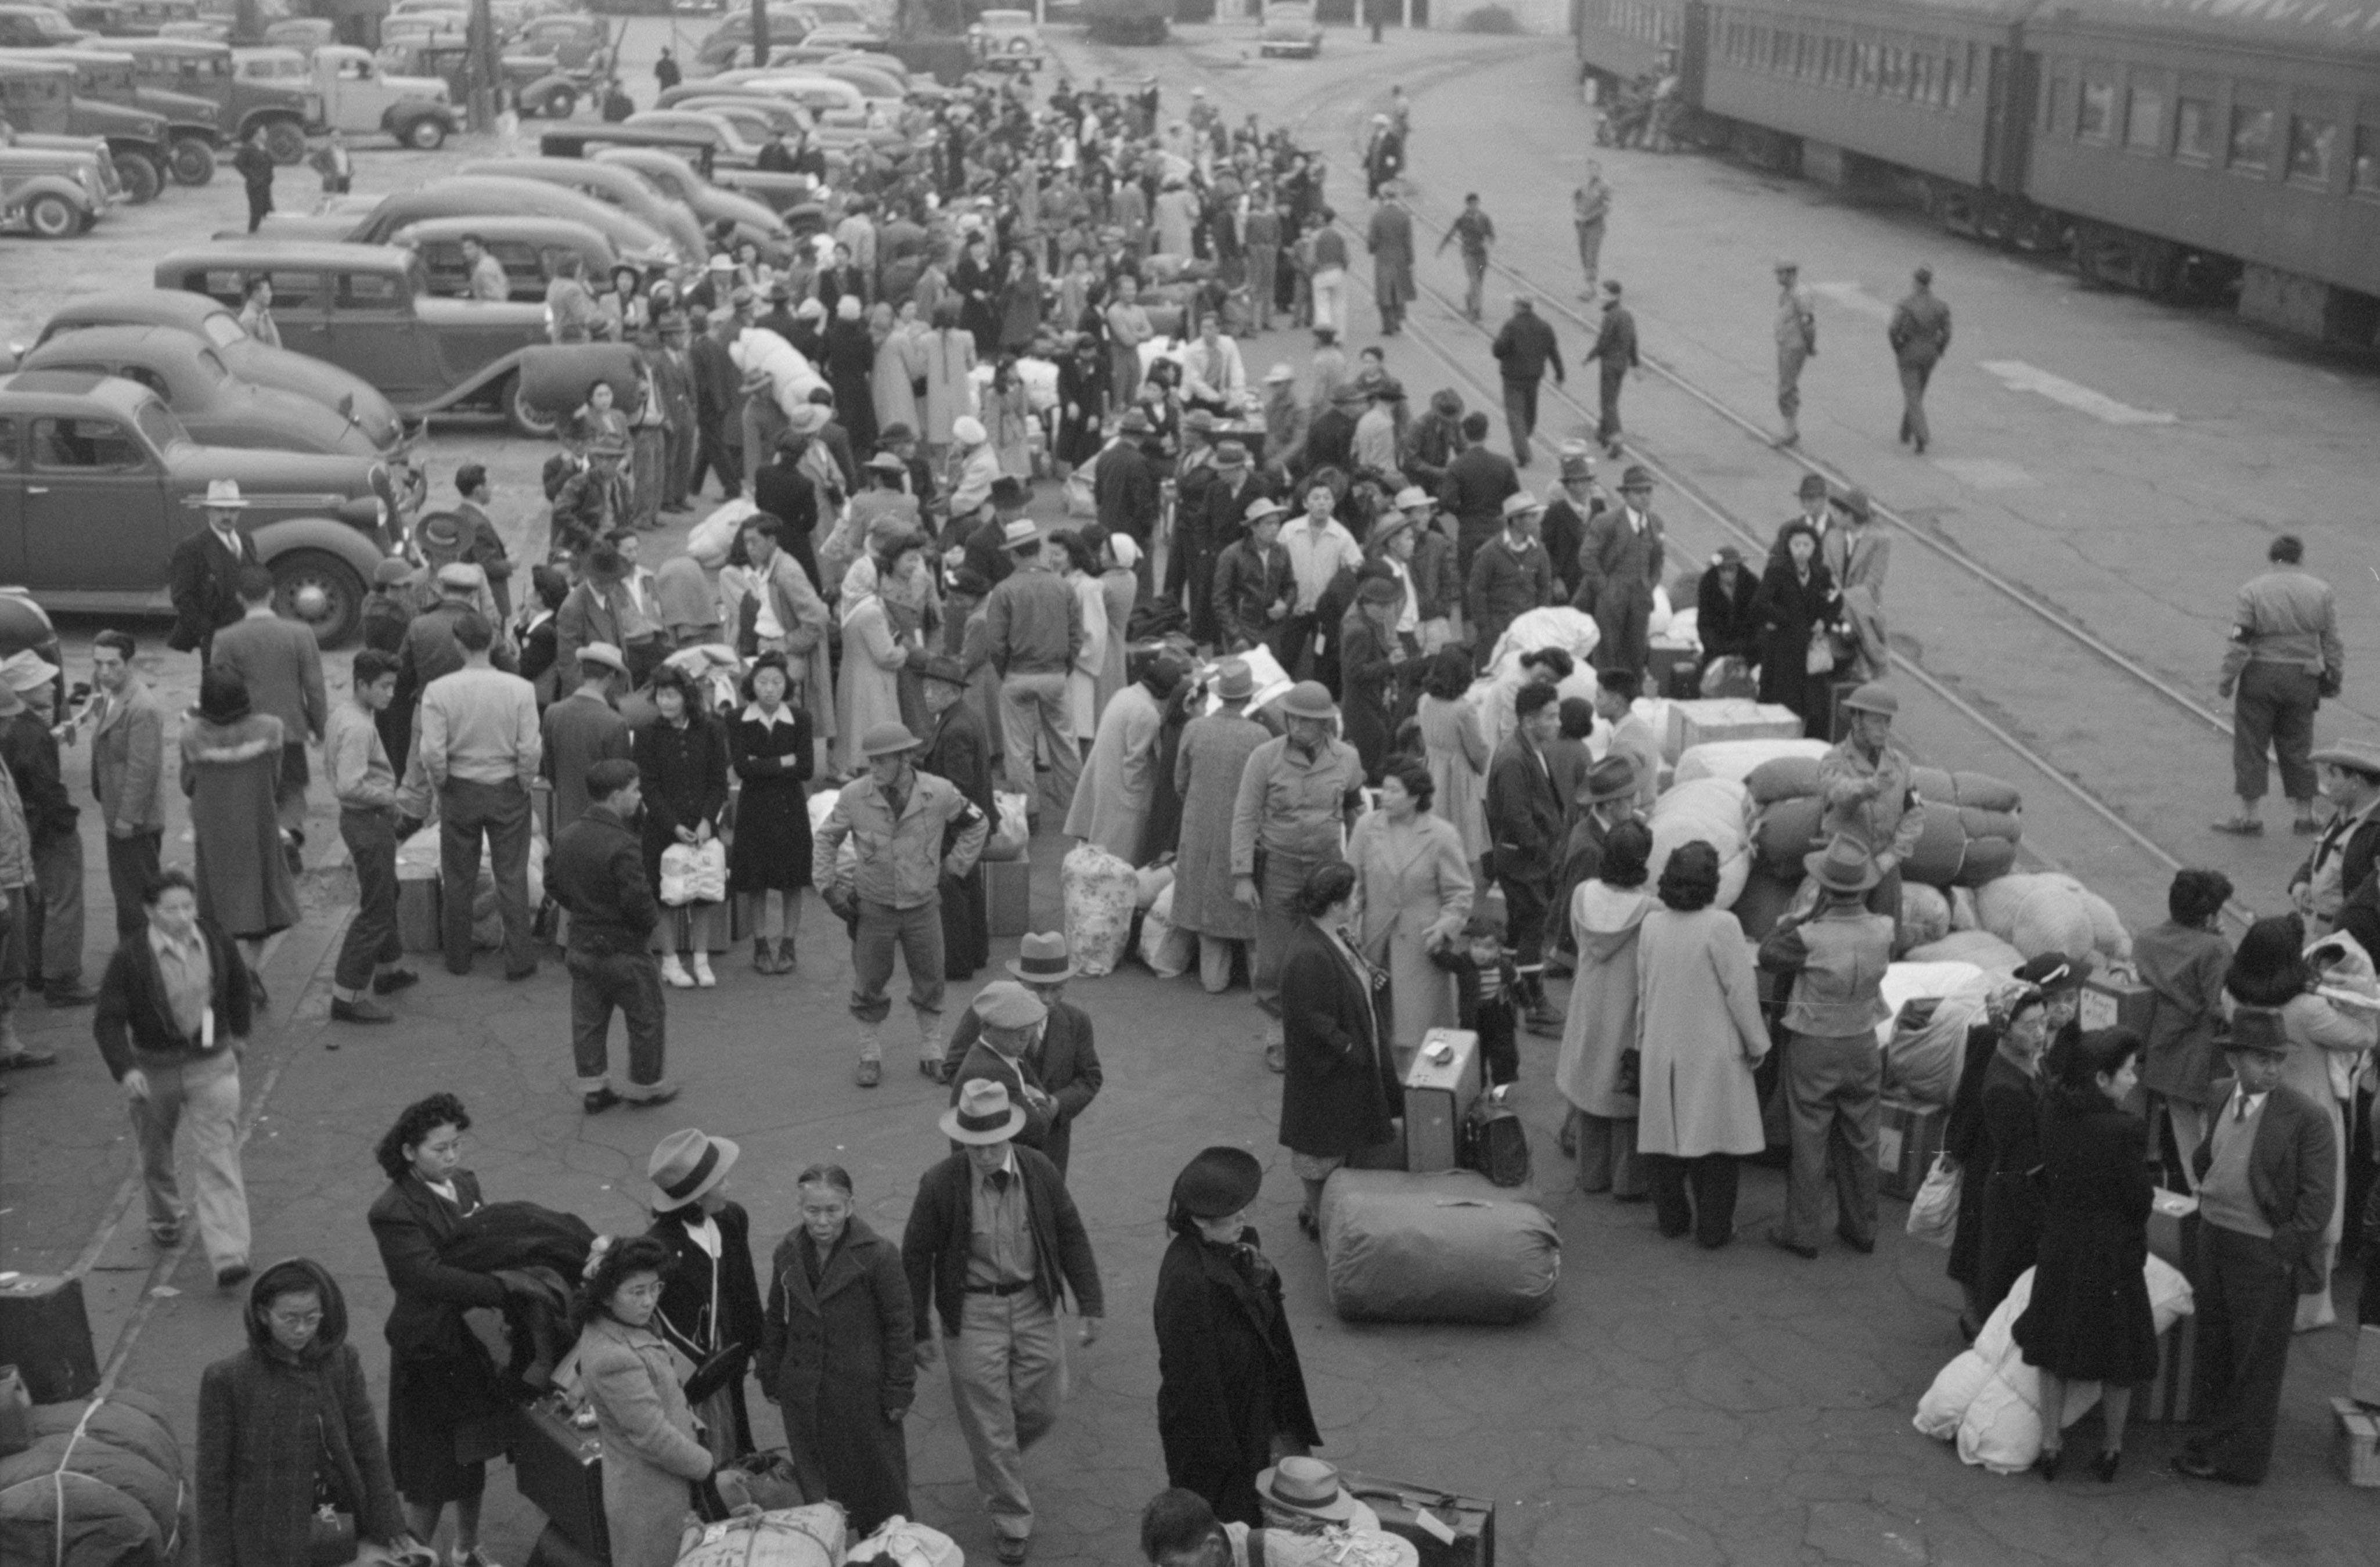 Russell Lee's Work Documenting the Japanese American Wartime